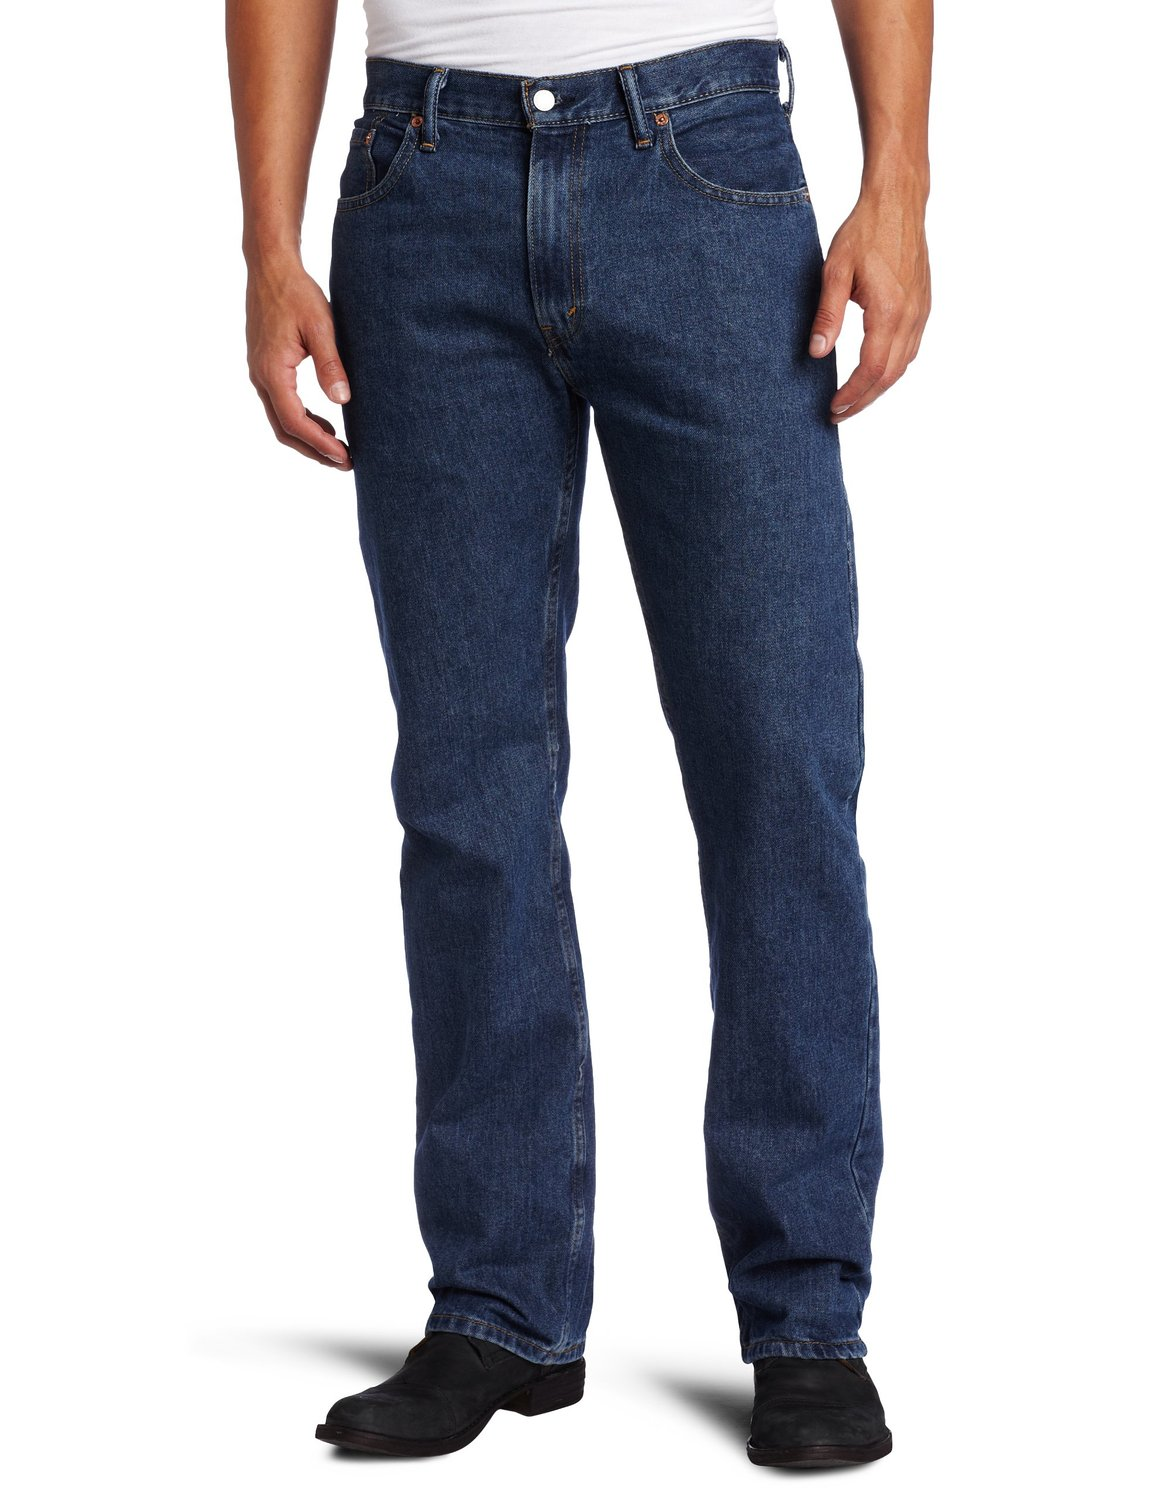 Shop for men's jeans in classic, relaxed or slim fit styles. Choose from a variety of designer jean brands, sizes & colors at Men's Wearhouse.